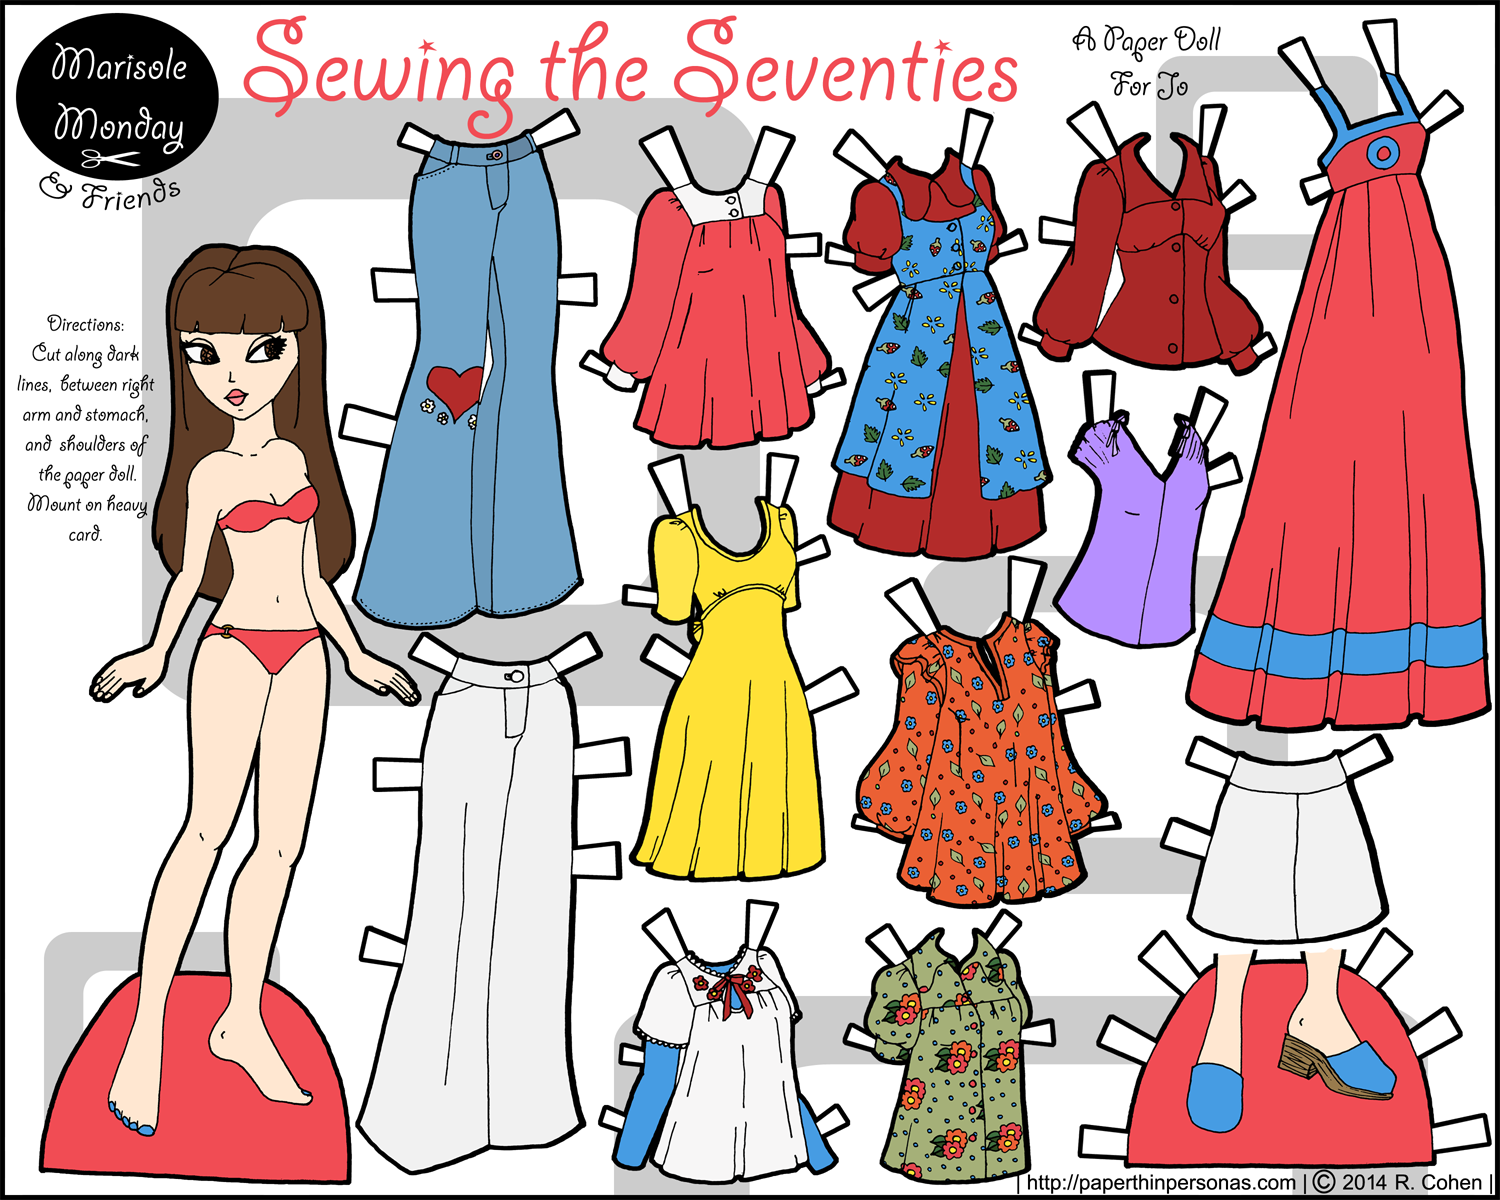 A historical paper doll with 1970s fashions from home sewing patterns in color- free to print from paperthinpersonas.com.